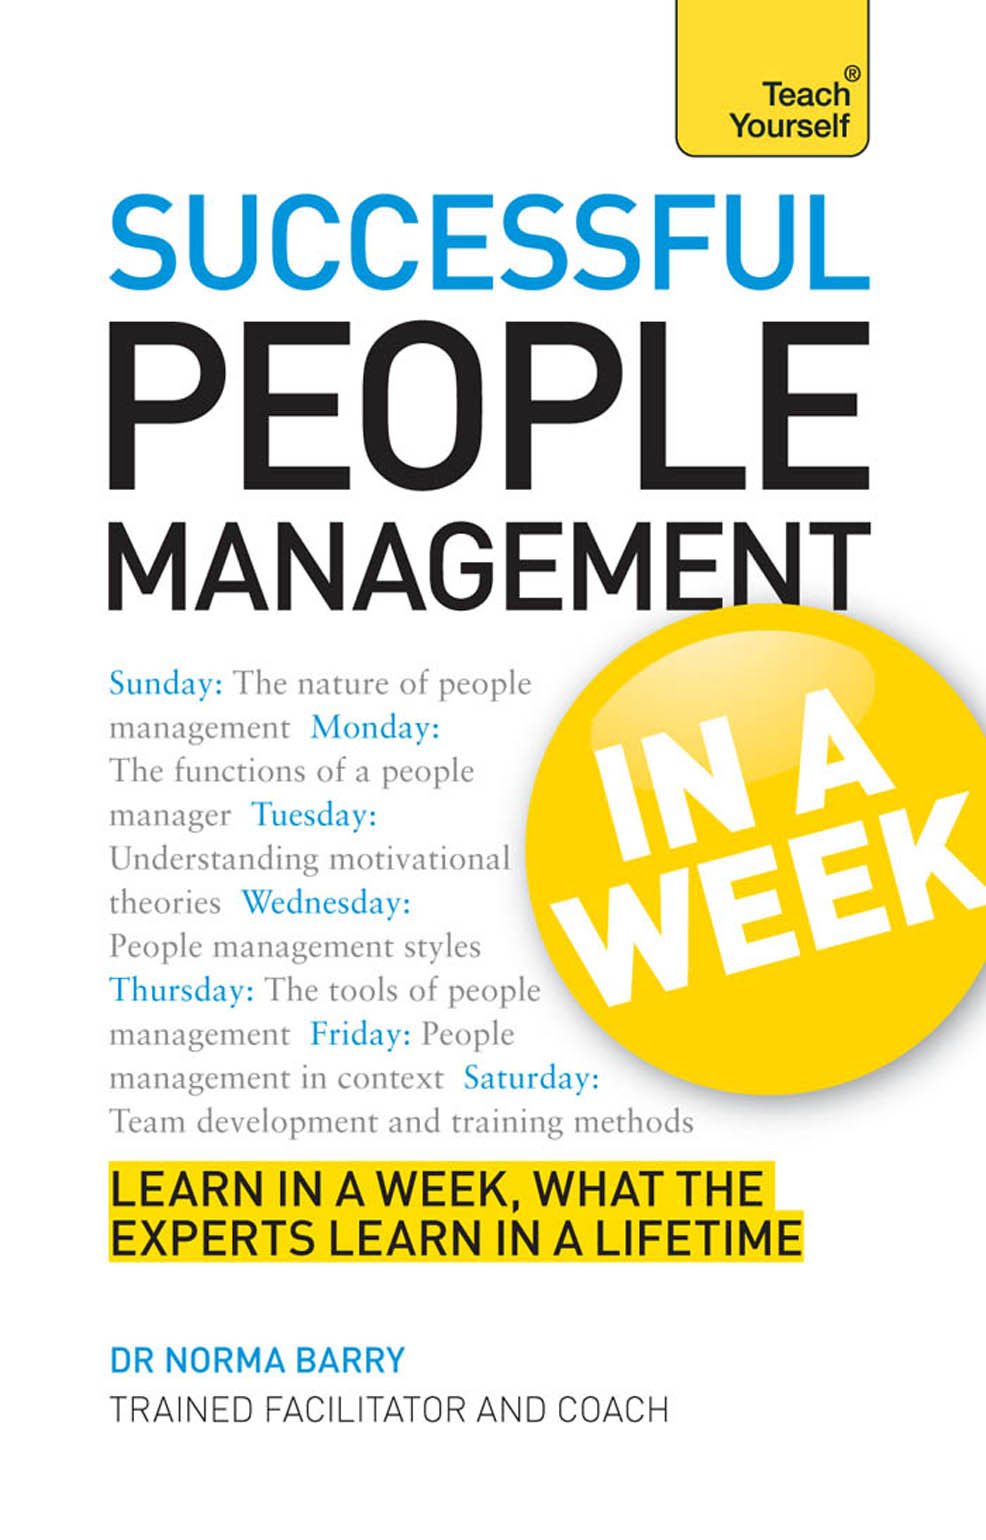 Download Ebook Successful People Management in a Week by Norma Barry Pdf